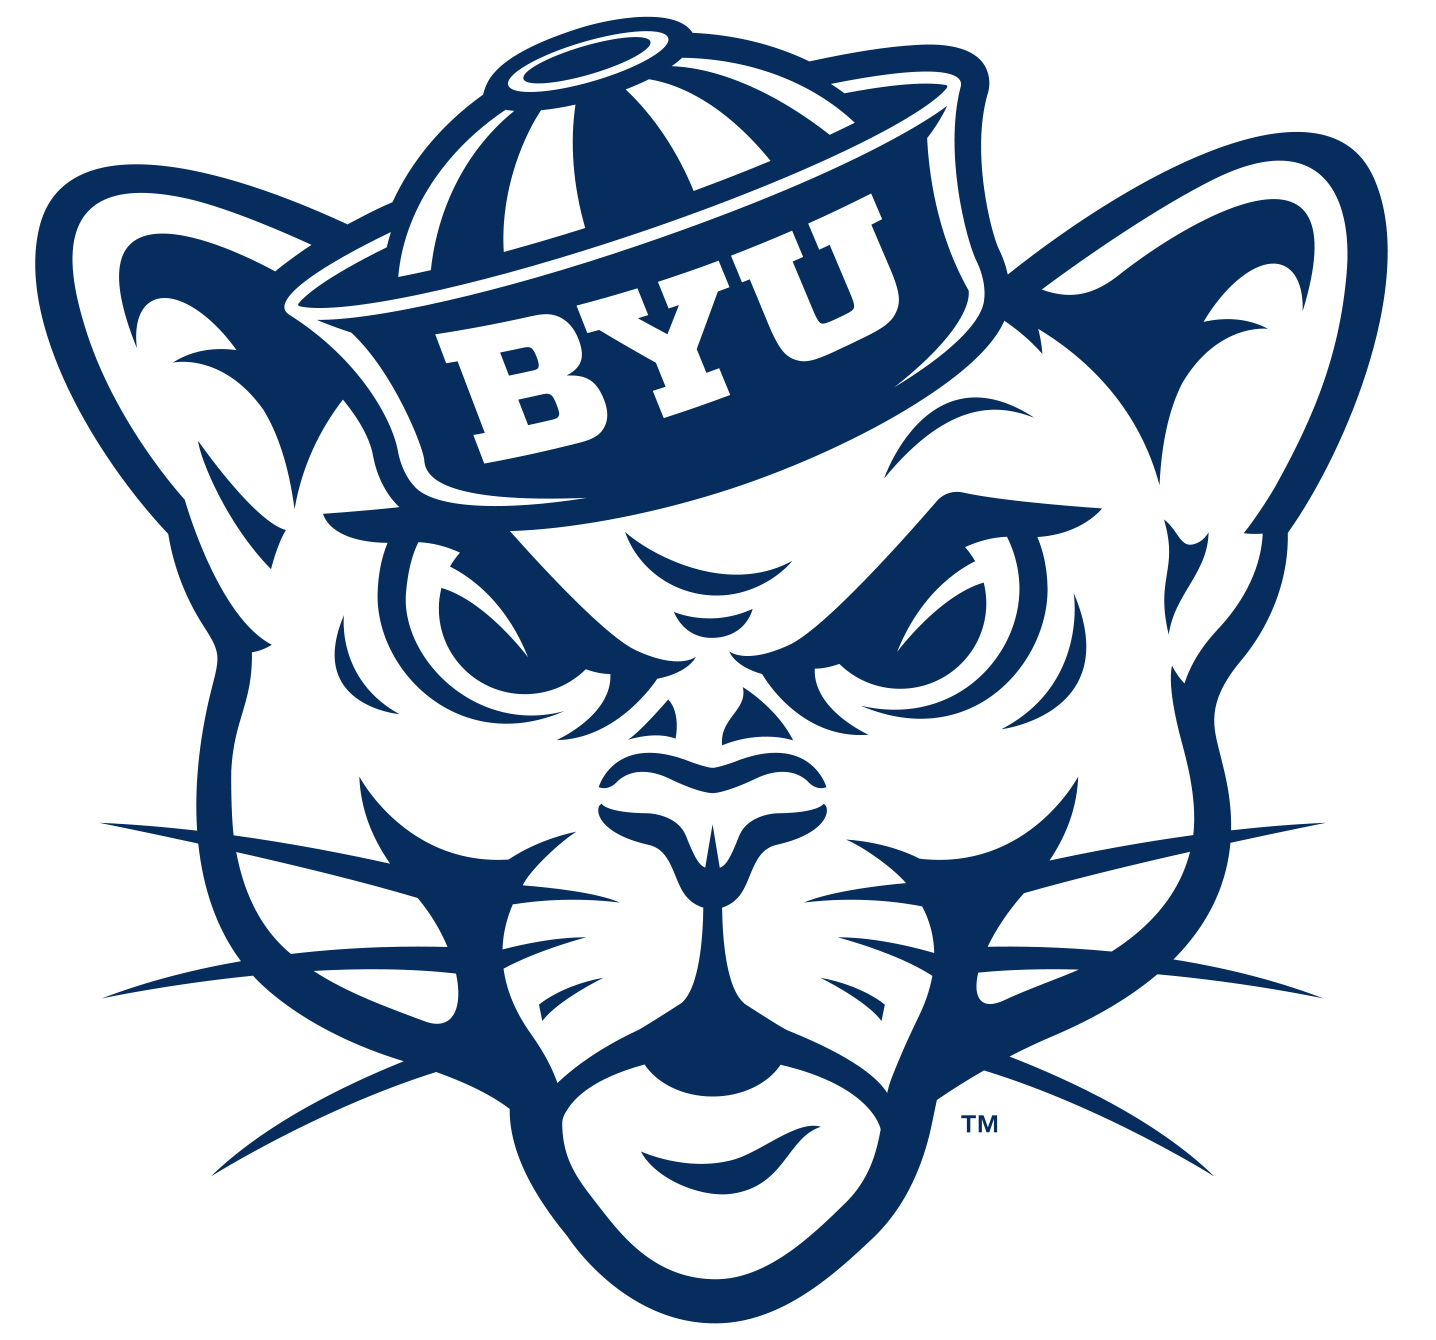 Secondary \'sailor cougar\' logo reinforces BYU\'s tradition.